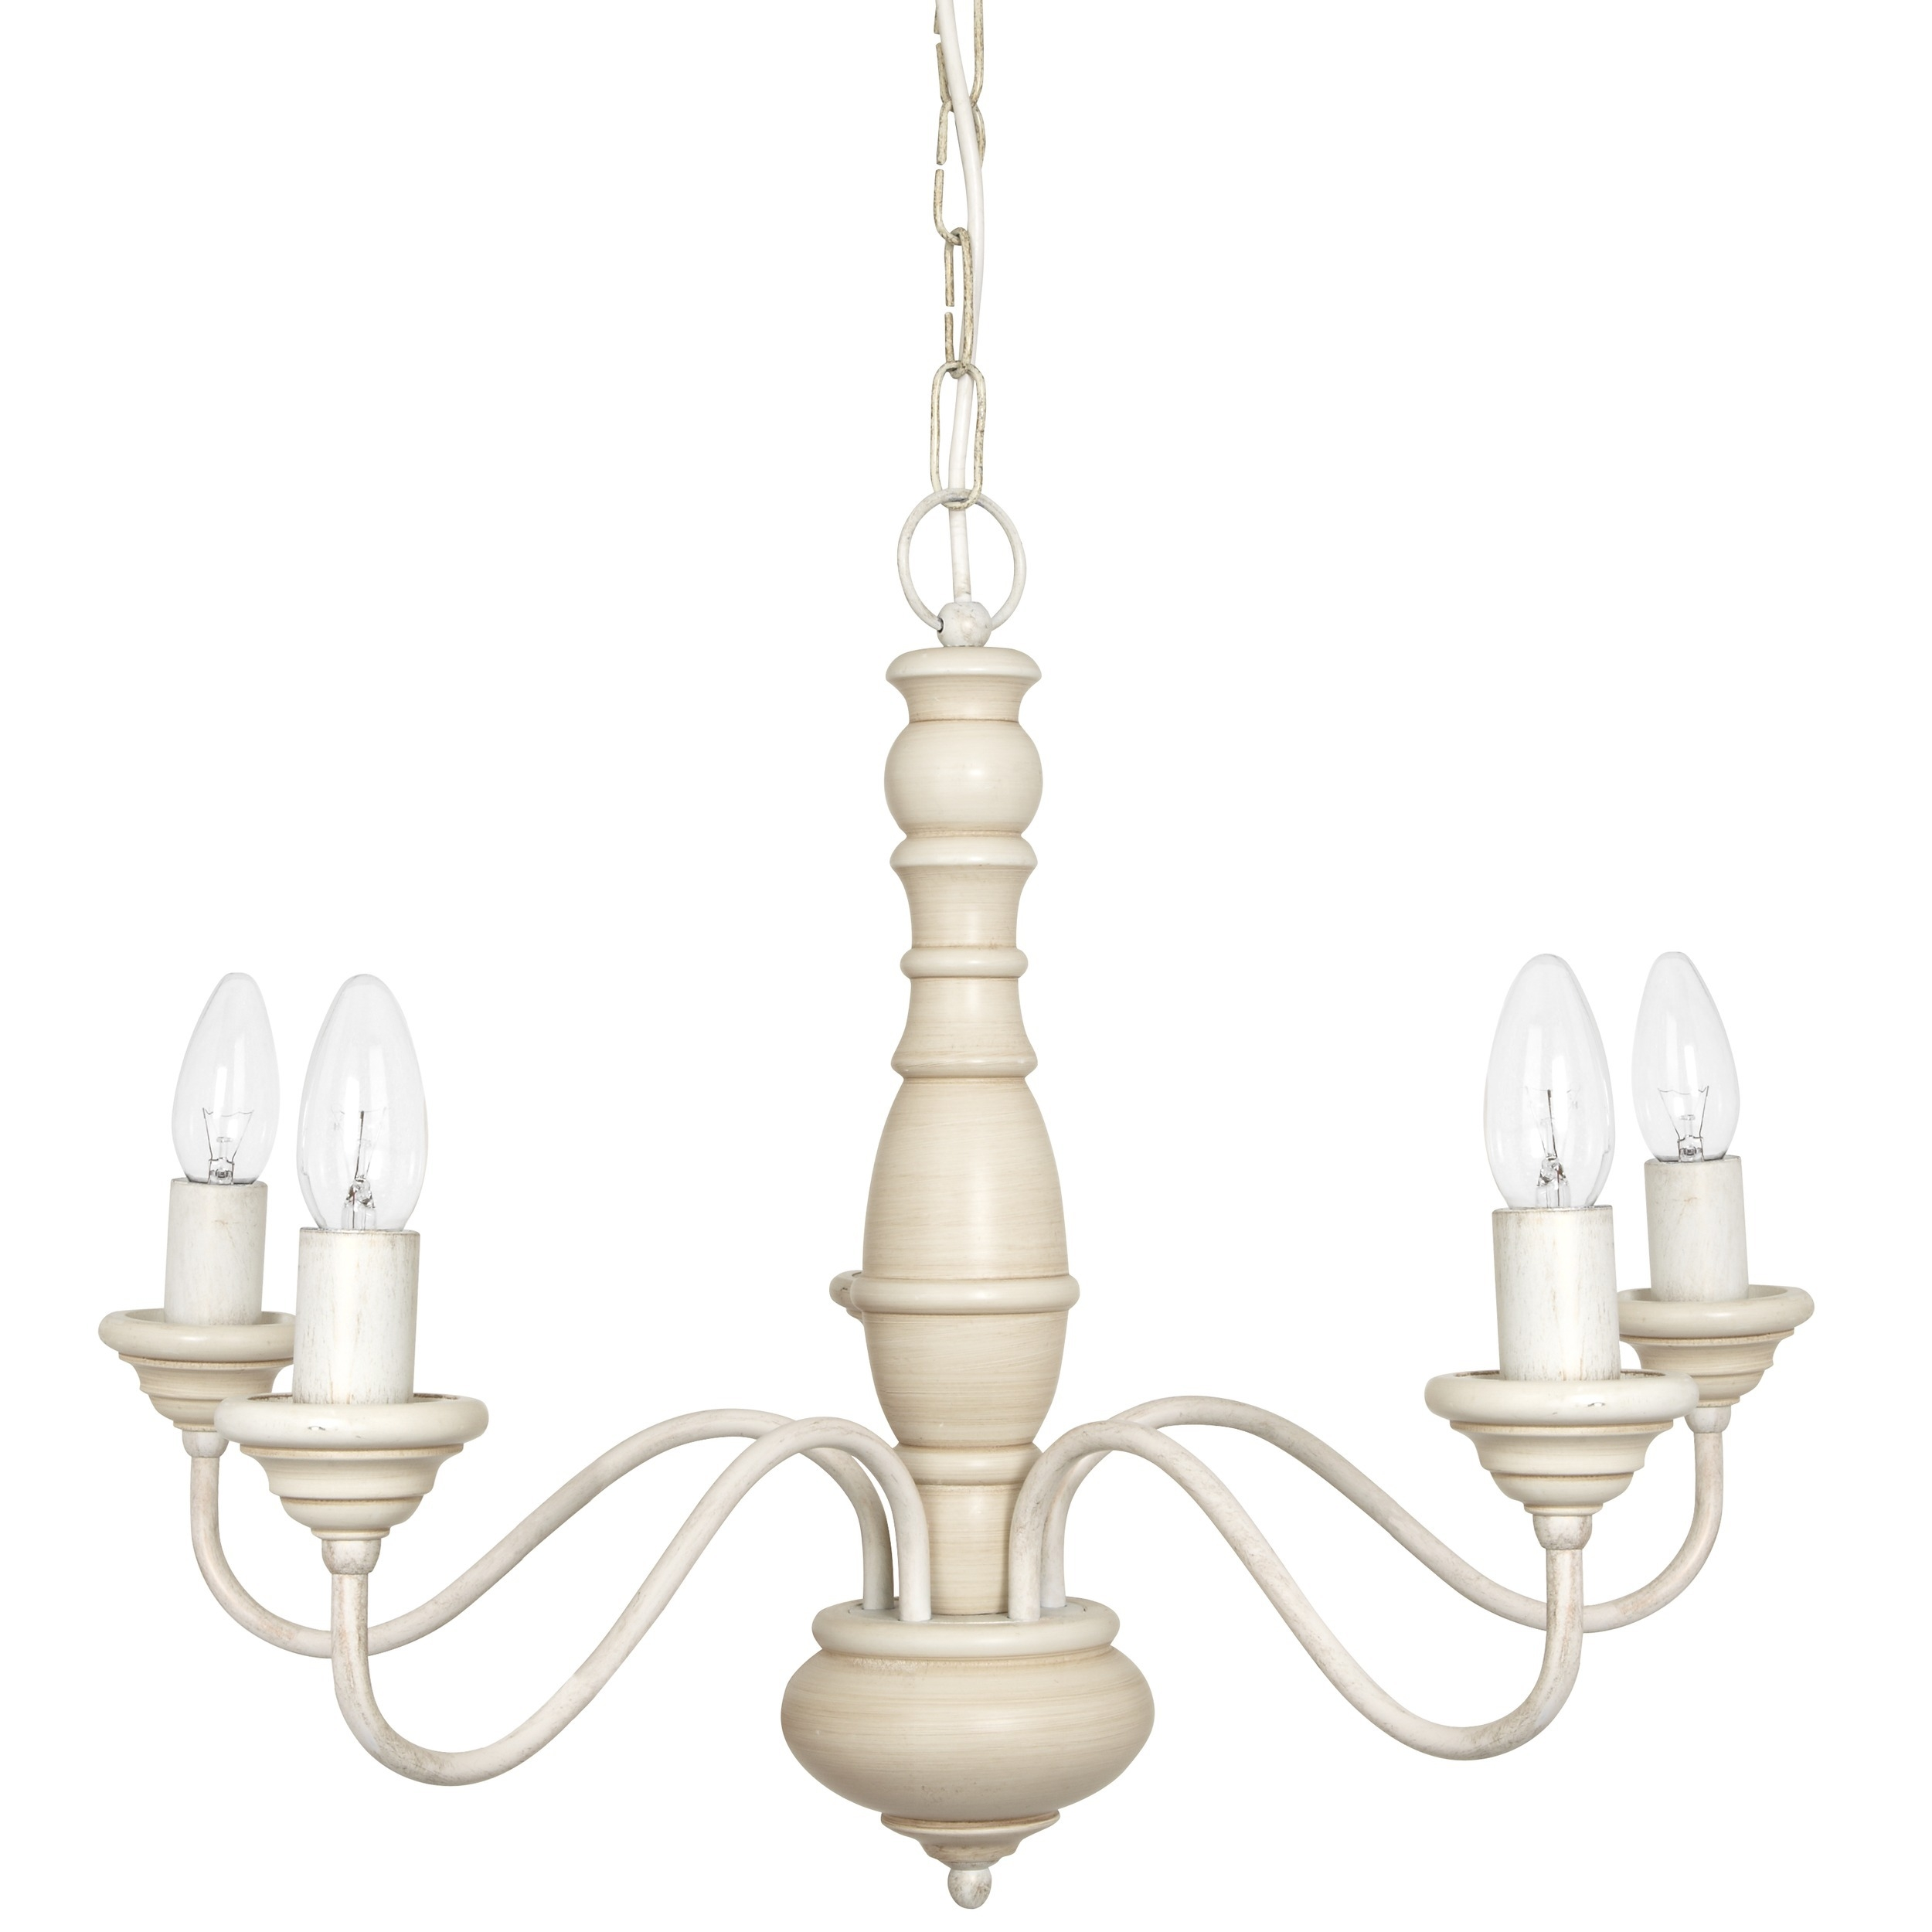 Milnsbridge Cream 5 Light Chandelier At Laura Ashley With Regard To Large Cream Chandelier (View 9 of 15)